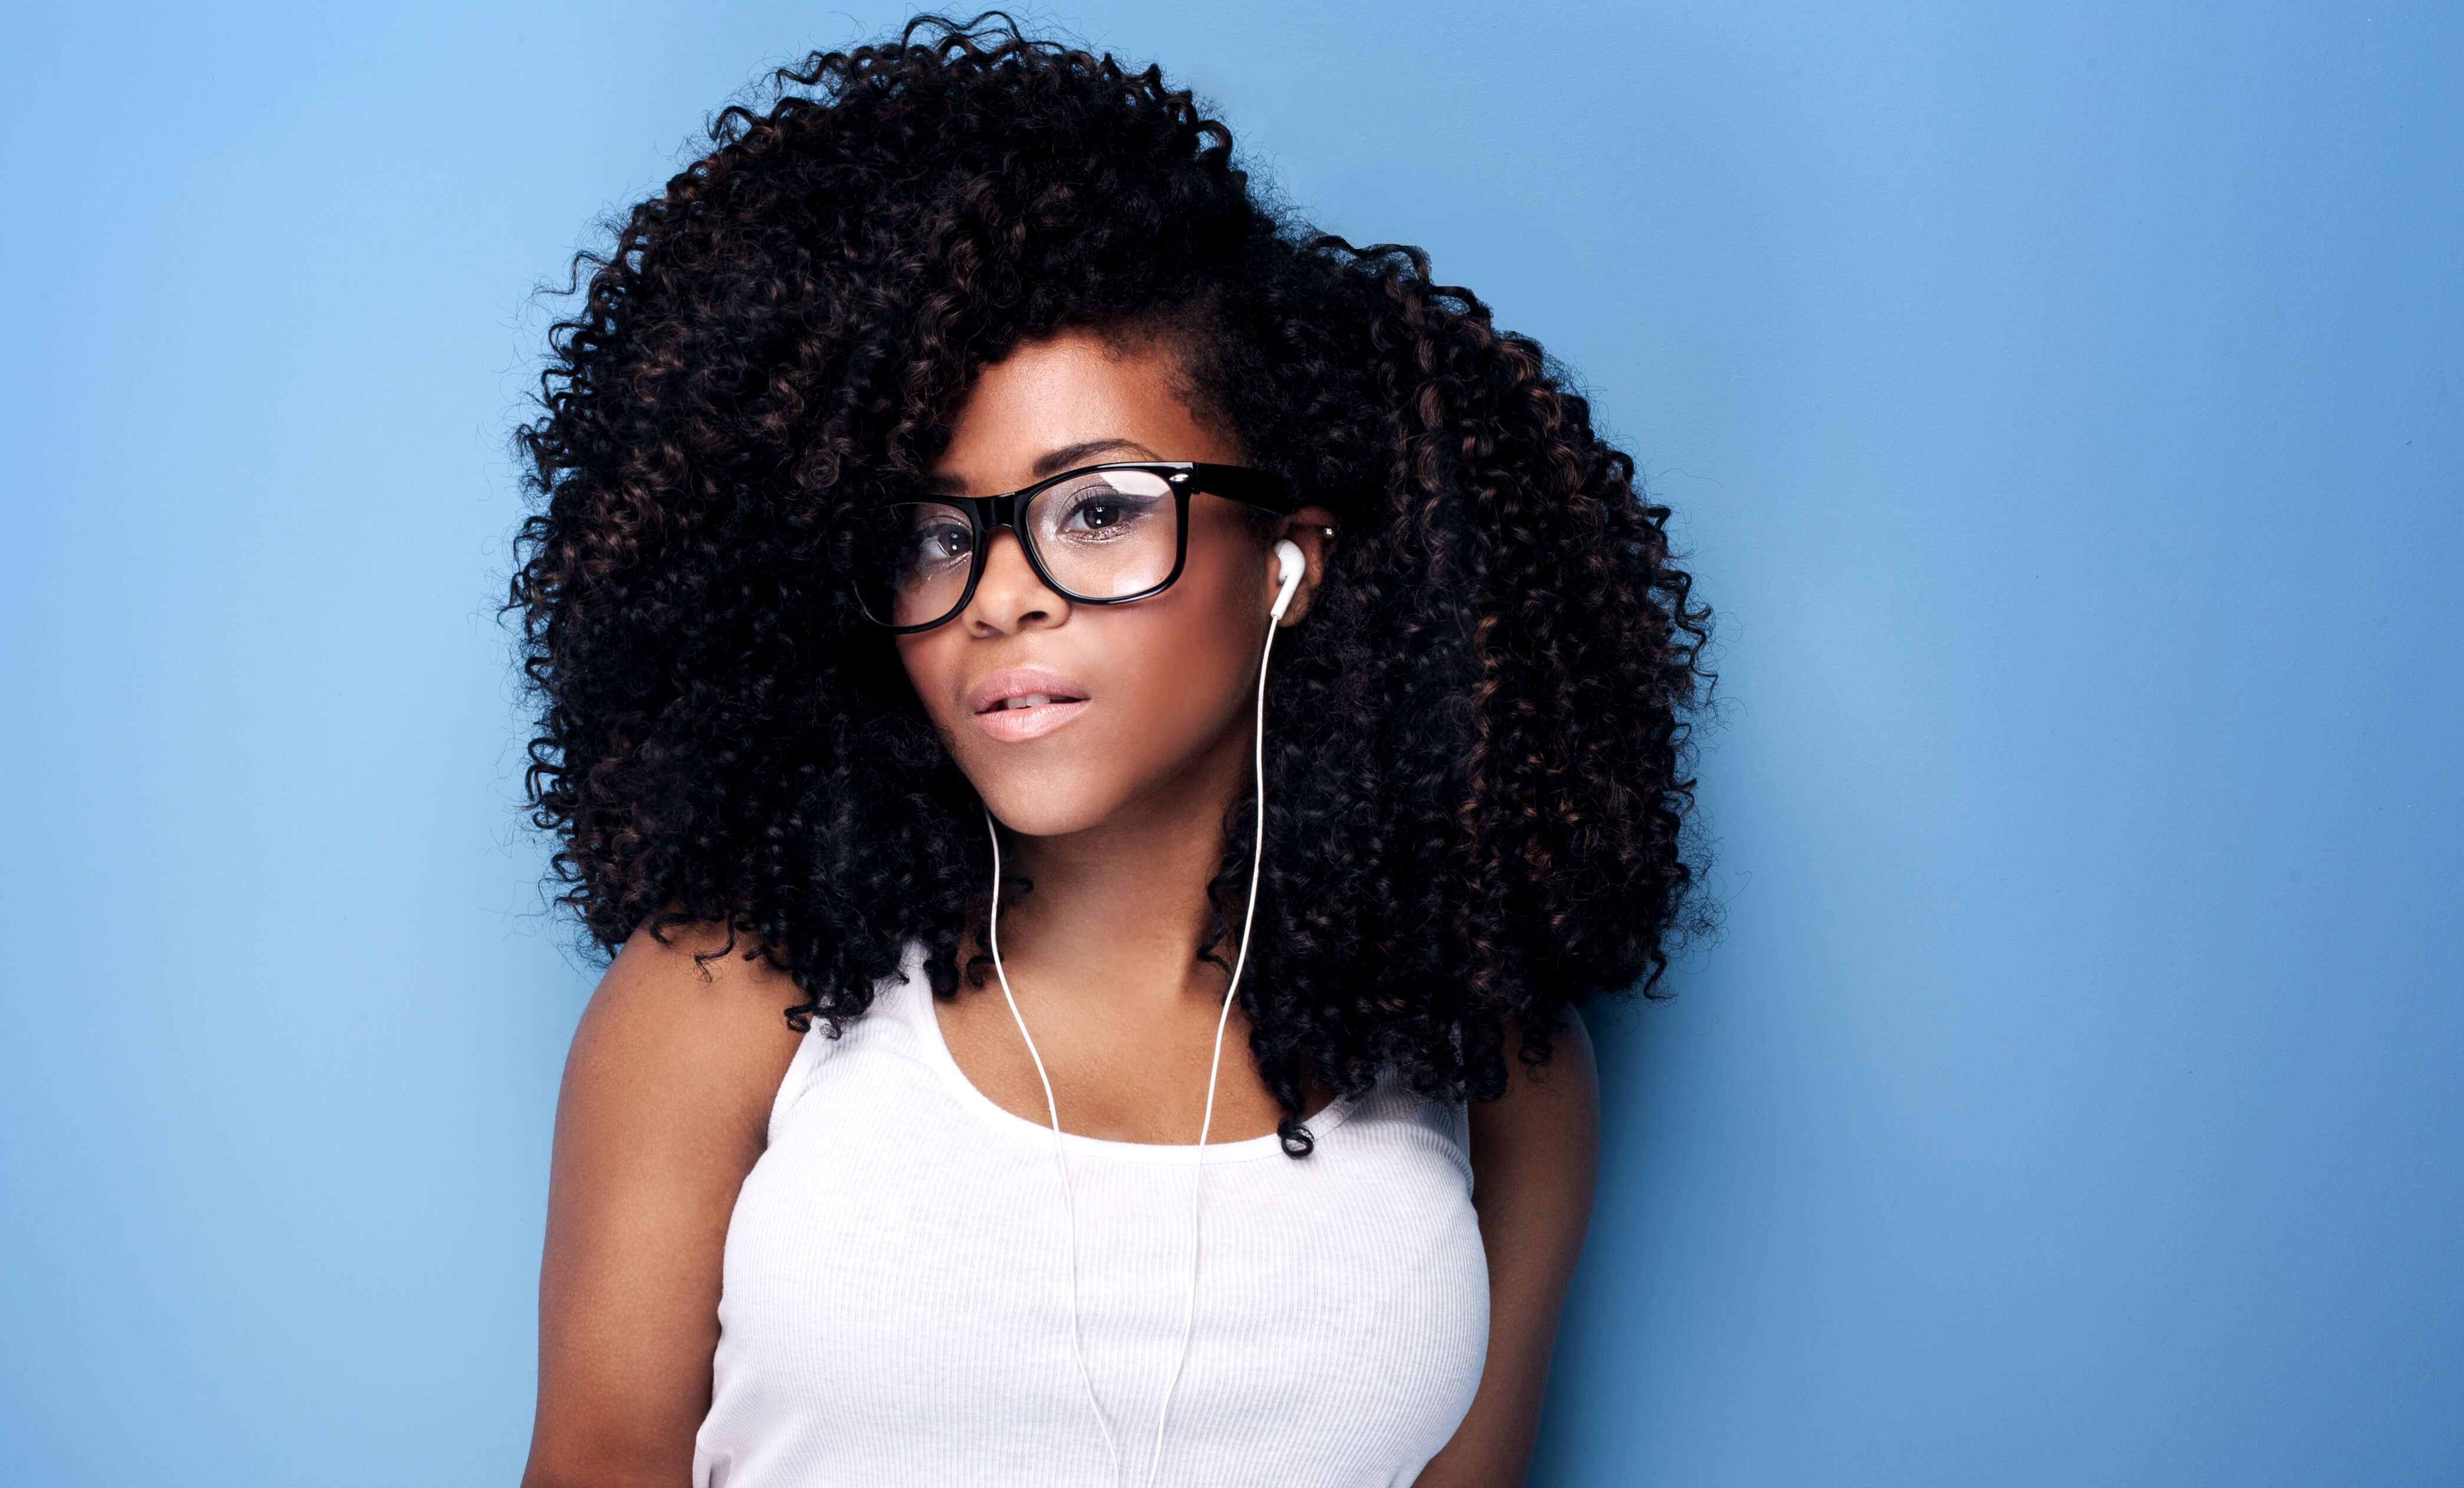 Afro Hairstyles: 7 Styles You've Got to Try